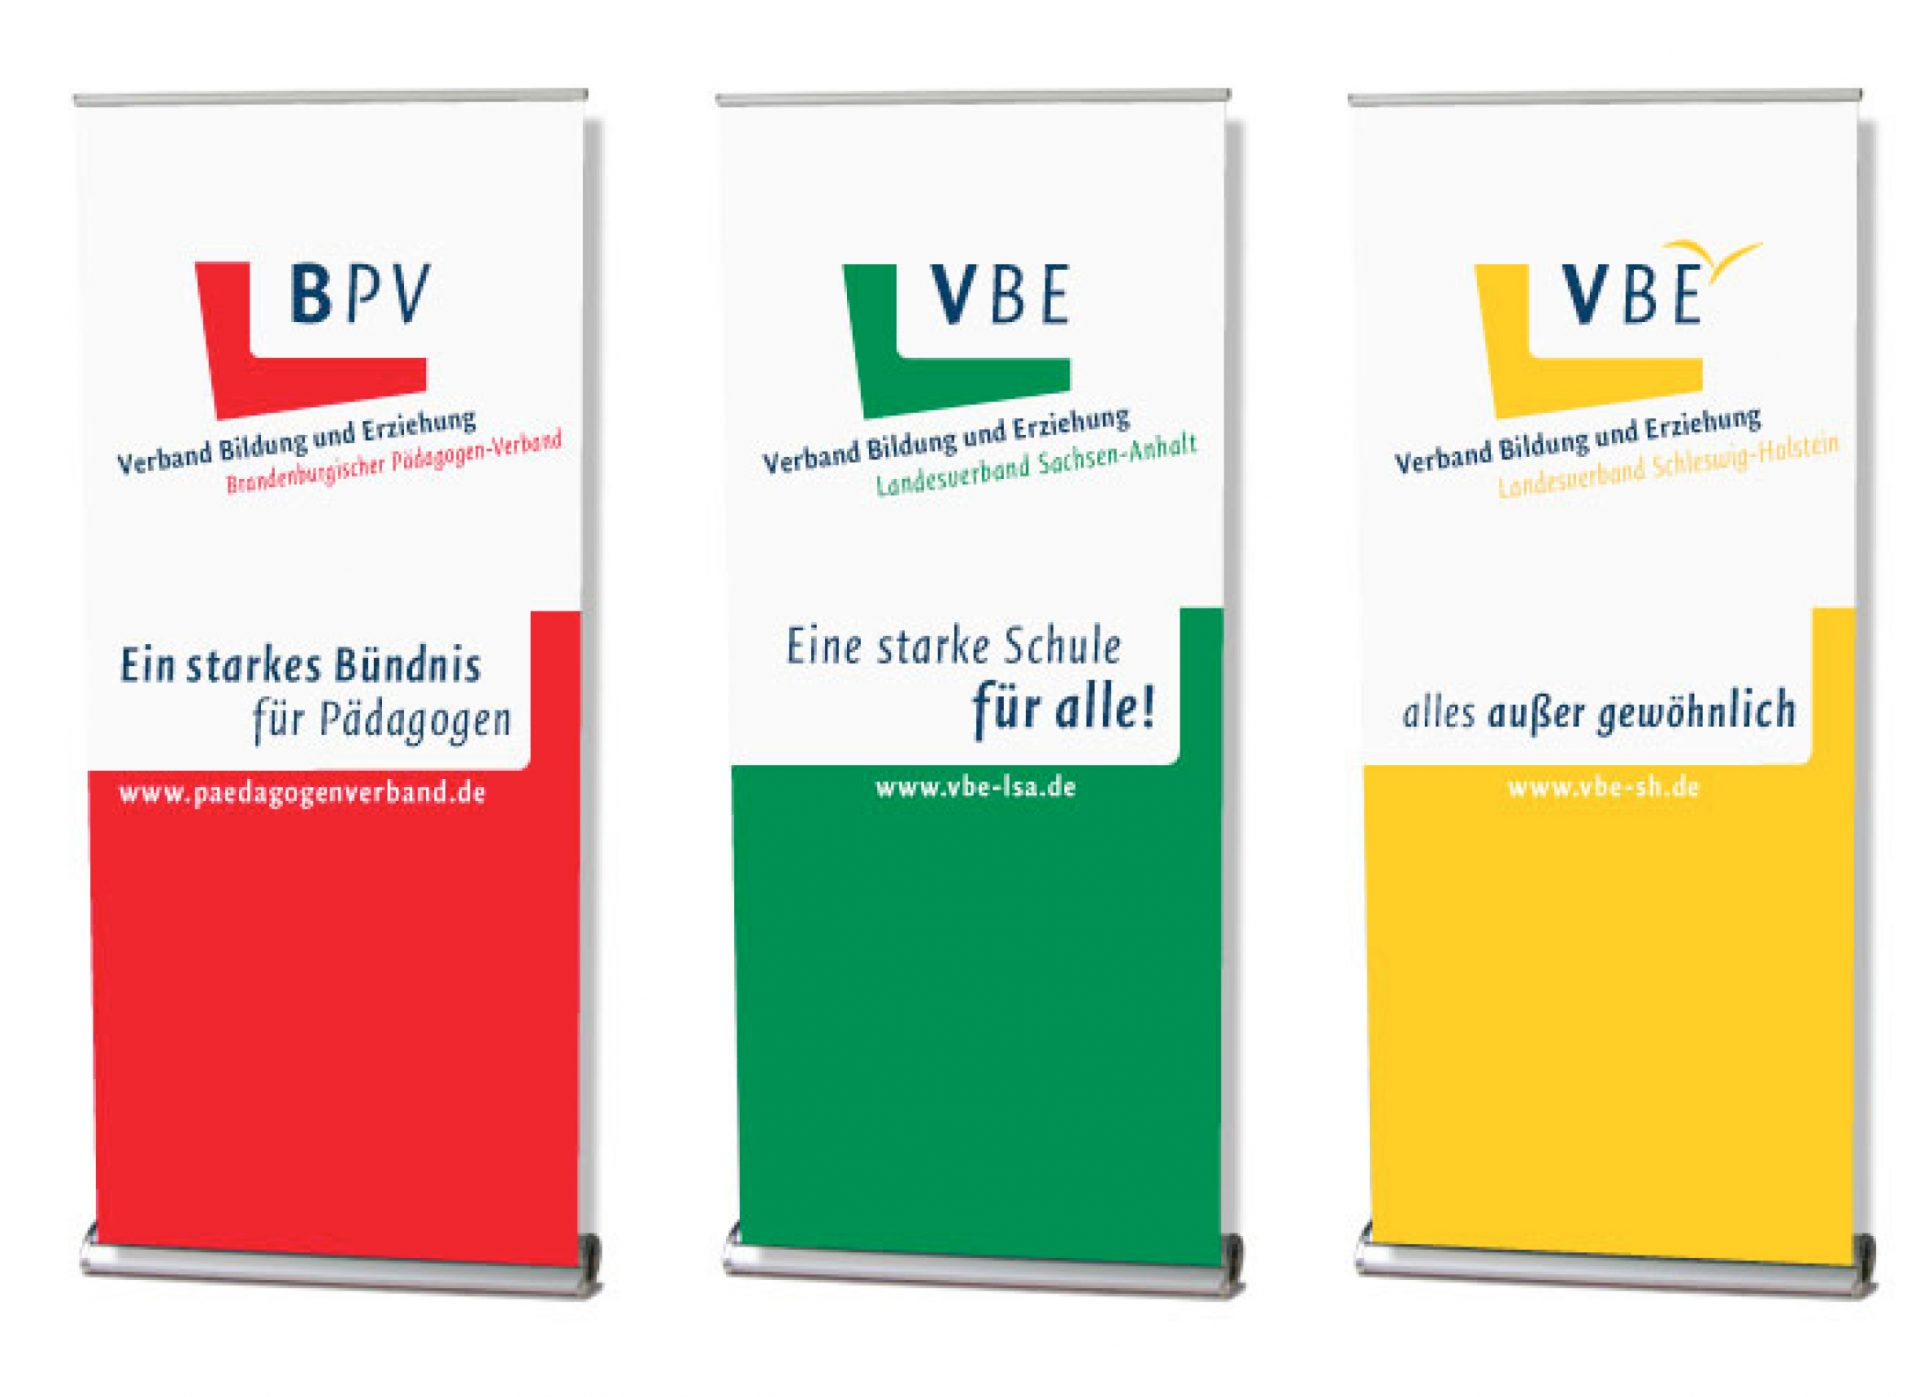 Gemeinsames Corporate Design auf Roll-Up-Bannern - Typoly